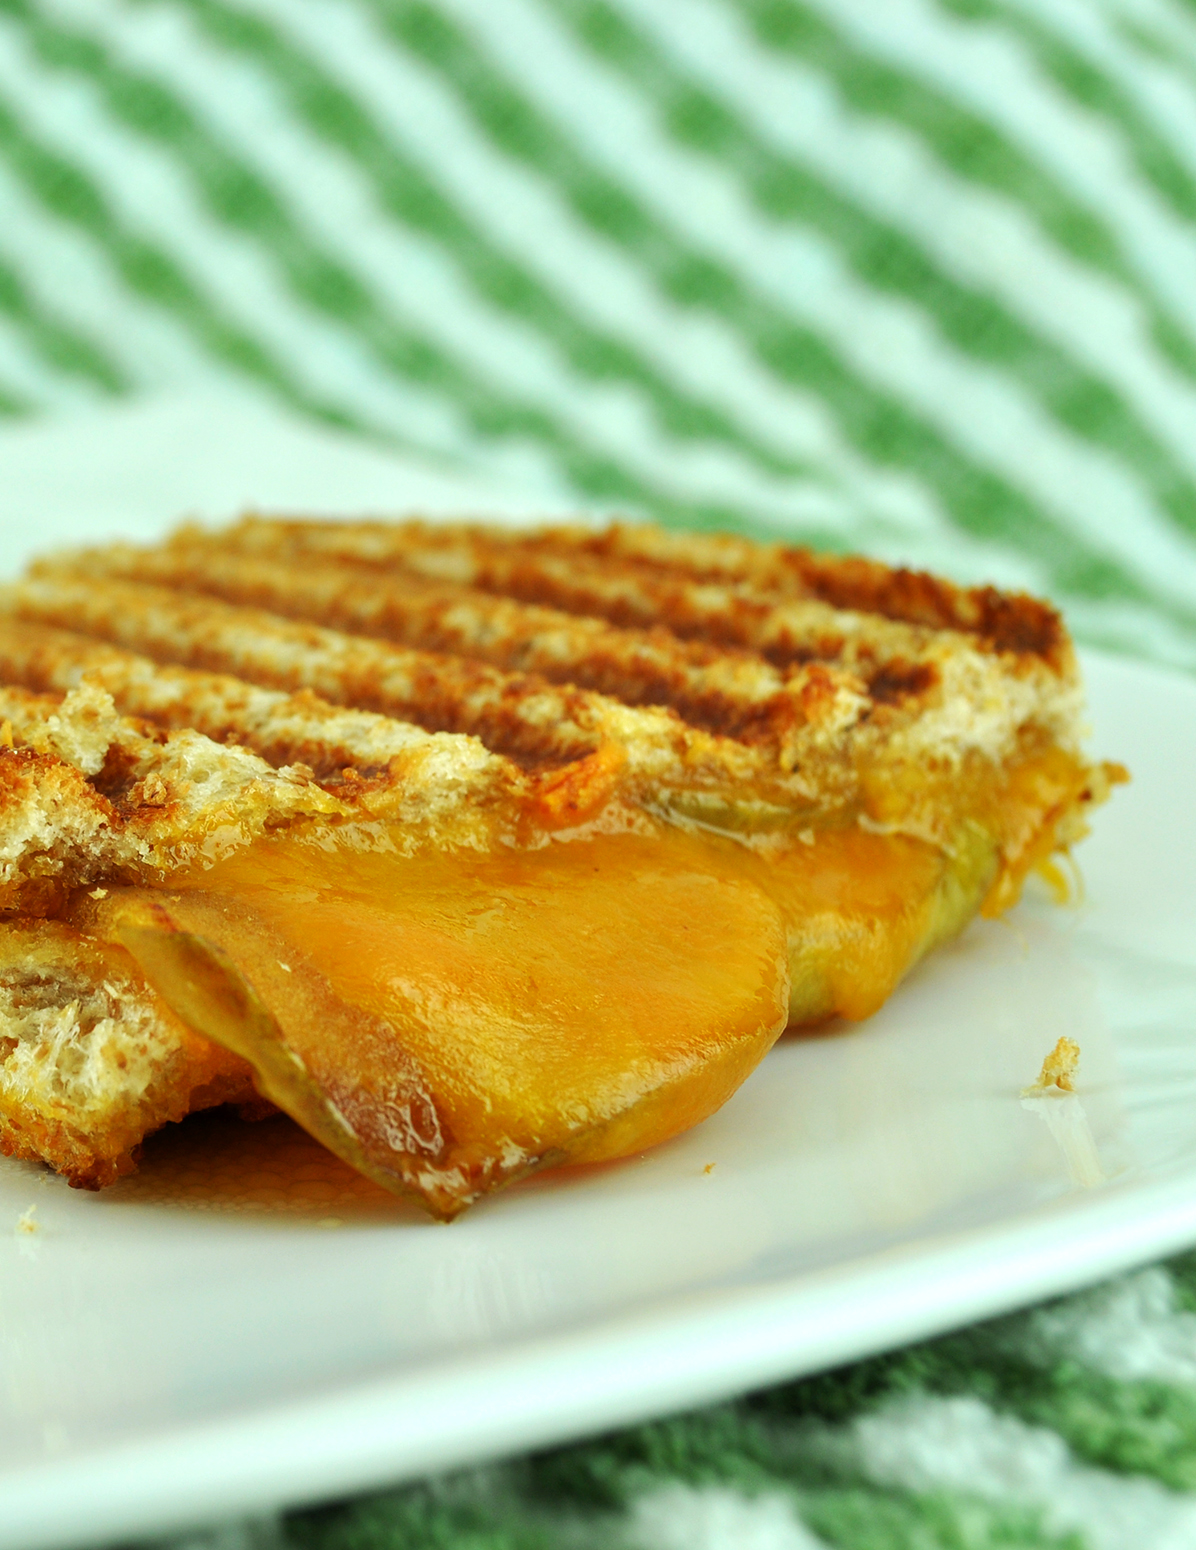 Grilled Cheese & Caramelized Apples Sandwich | BS' in the ...